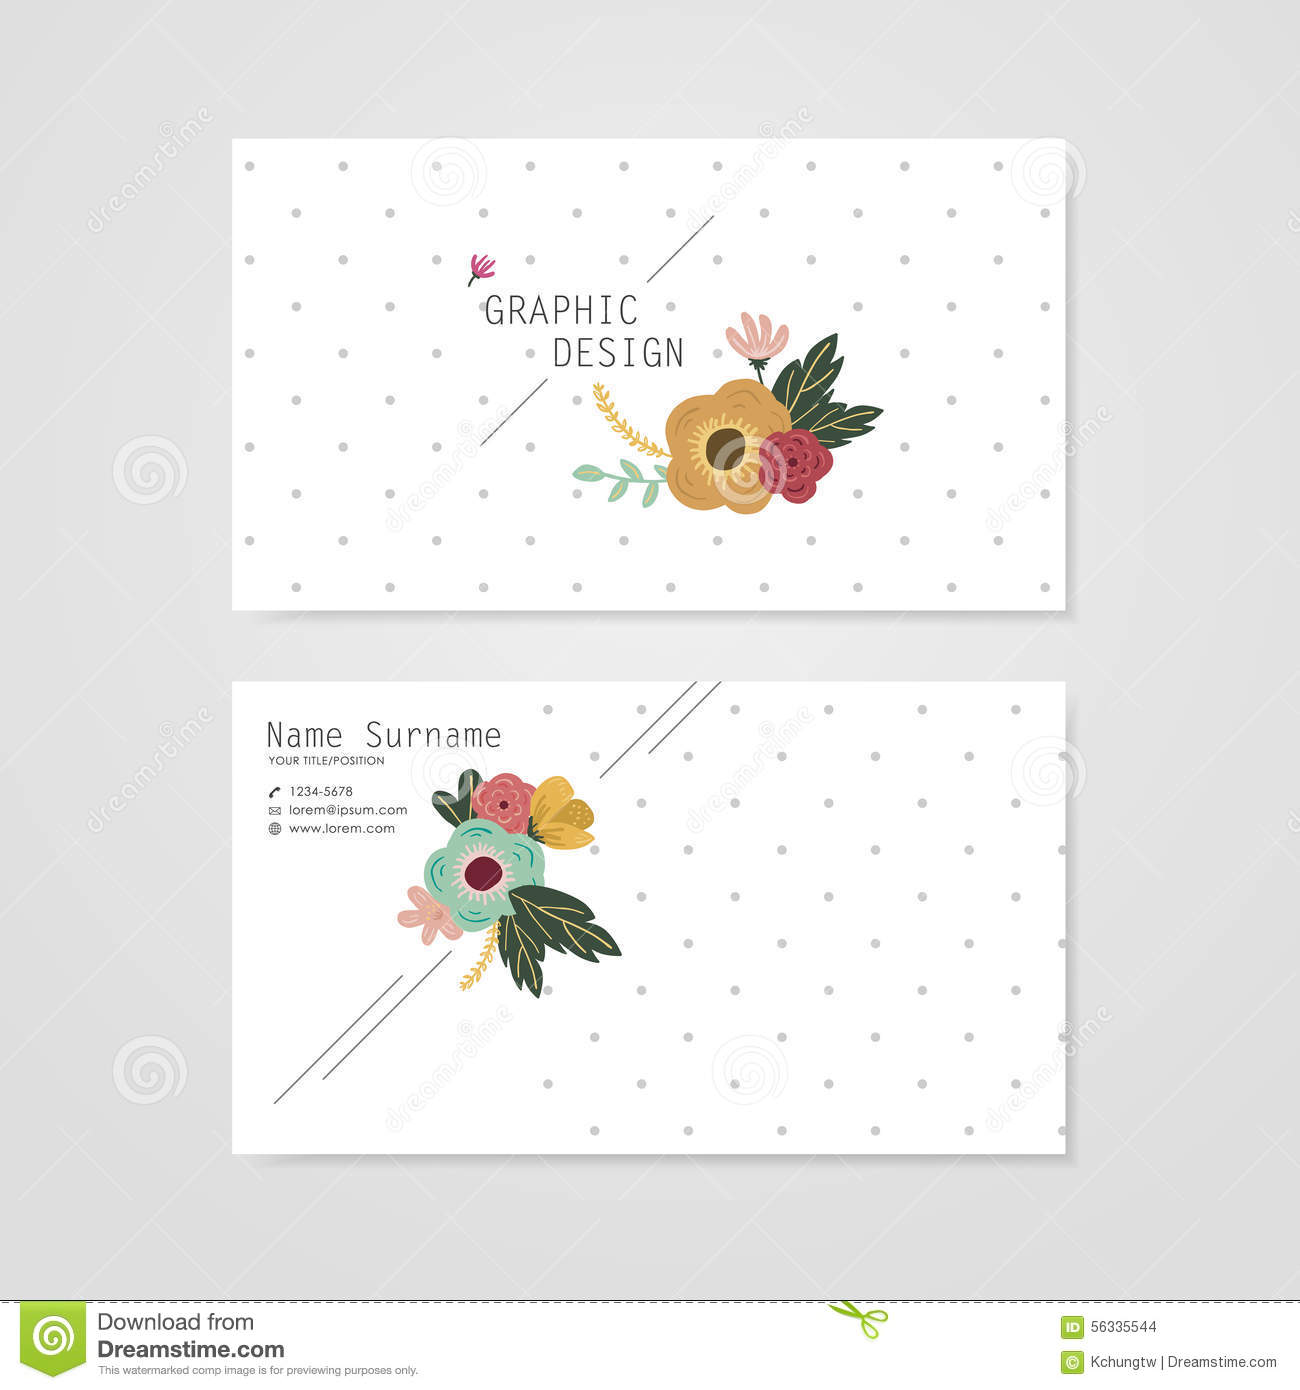 Lovely Business Card Template Design Stock Vector - Illustration ...